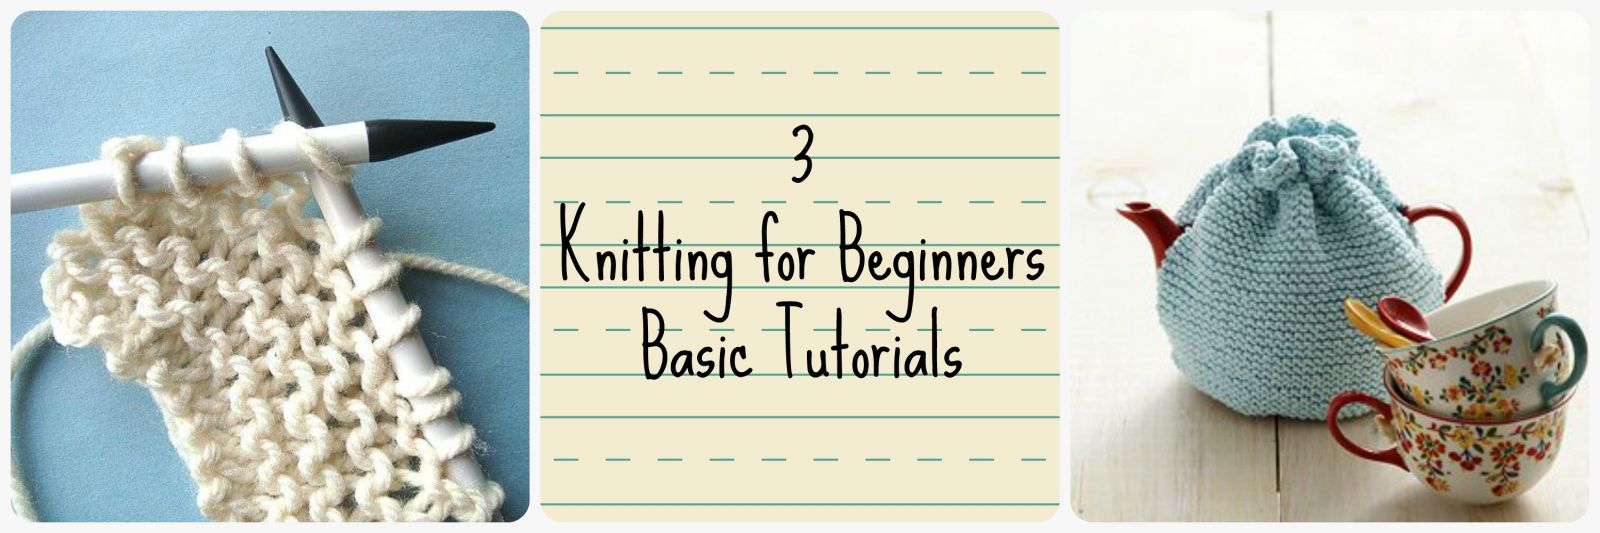 Different Knitting Stitches For Beginners : 3 Knitting for Beginners Basic Tutorials AllFreeKnitting.com